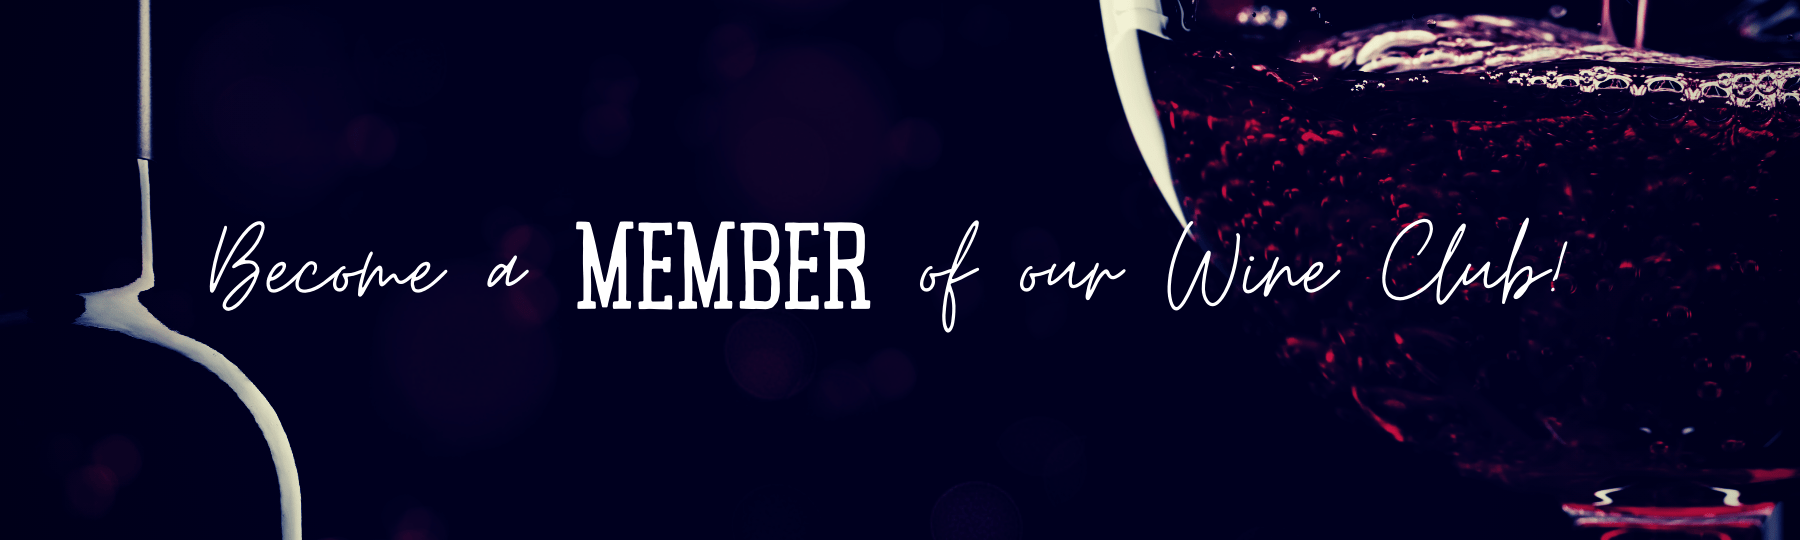 Become A Member Of Our Wine Club